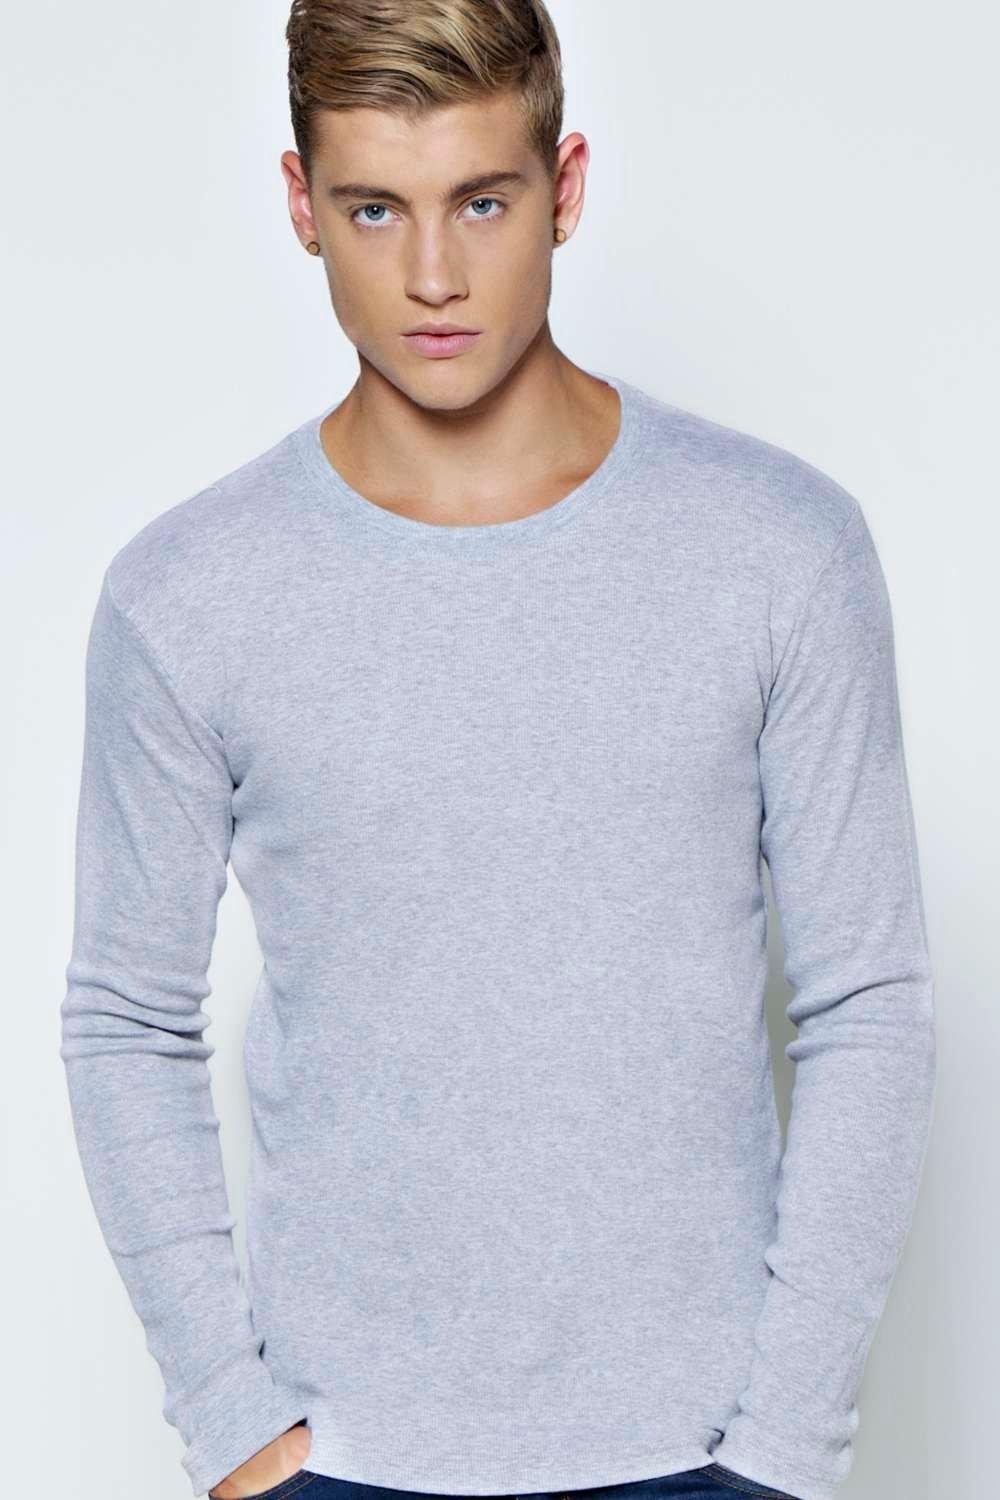 boohoo mens long sleeve crew neck ribbed t shirt